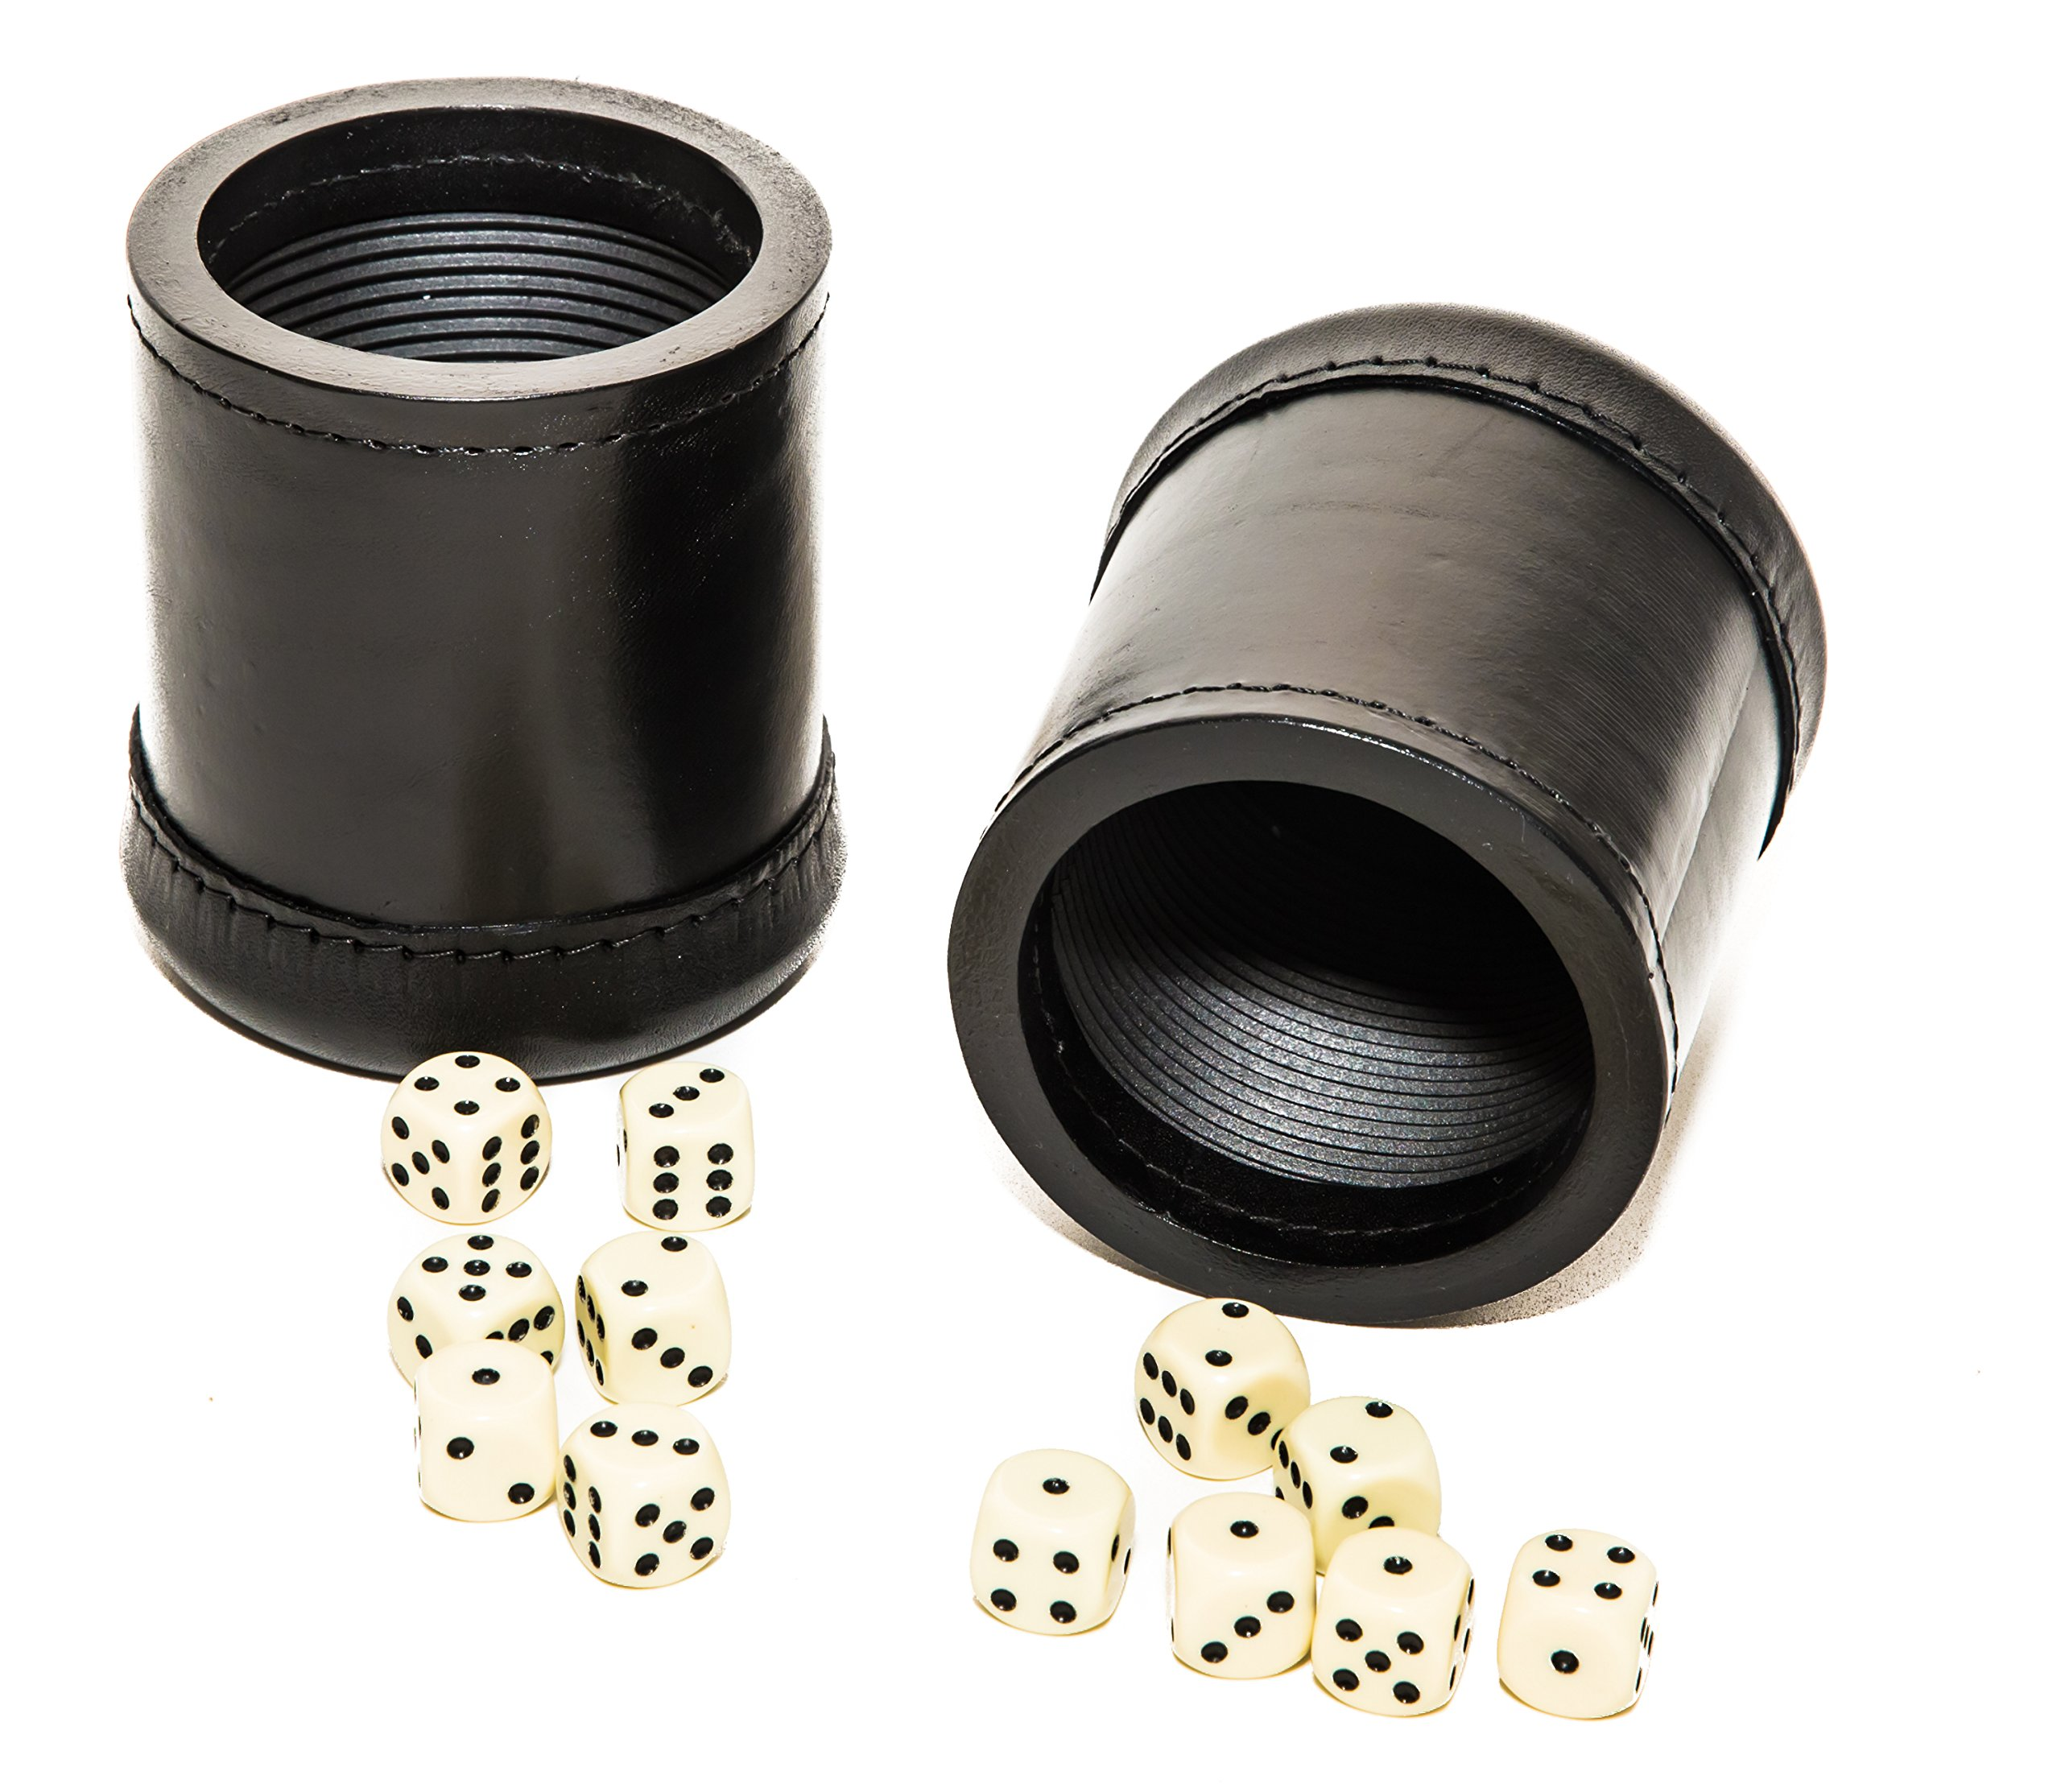 Two Bello Games Professional Genuine Leather Ribbed Dice Cups with 10 Dice by Bello Games New York, Inc.